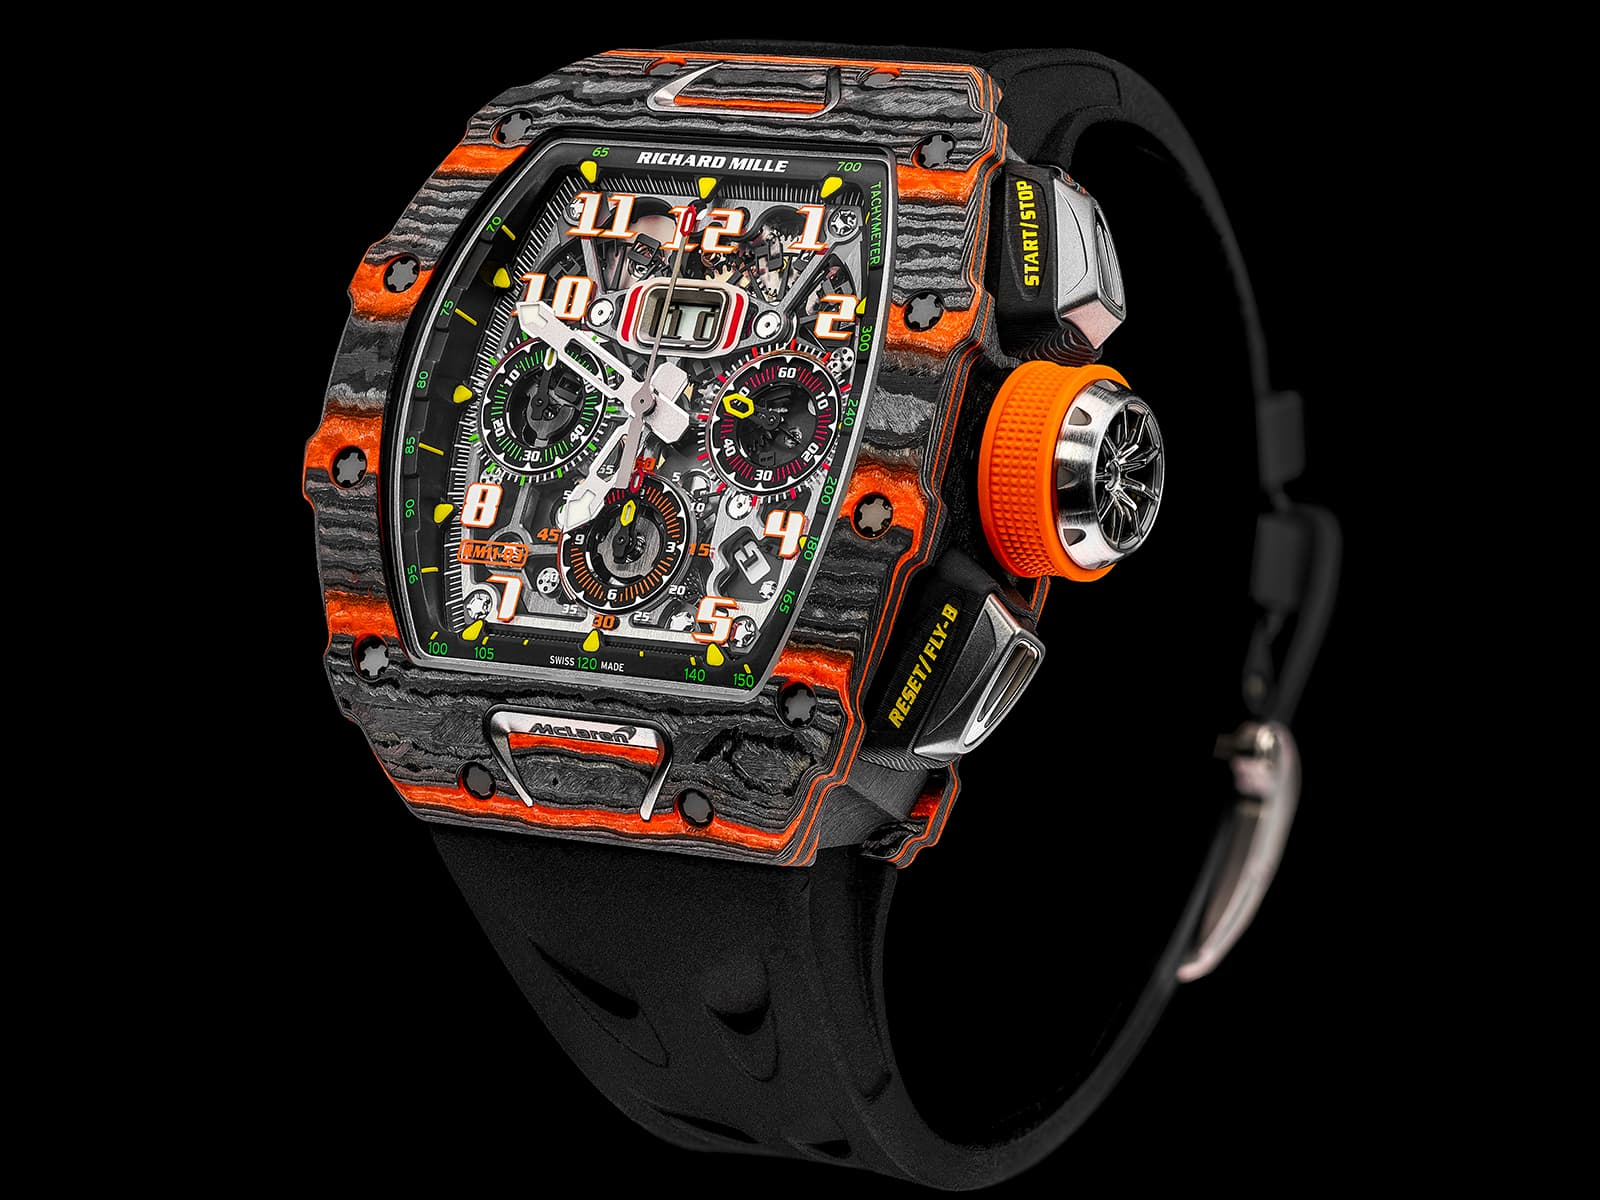 richard-mille-rm-11-03-mcLaren-automatic-flyback-chronograph-only-watch-1.jpg